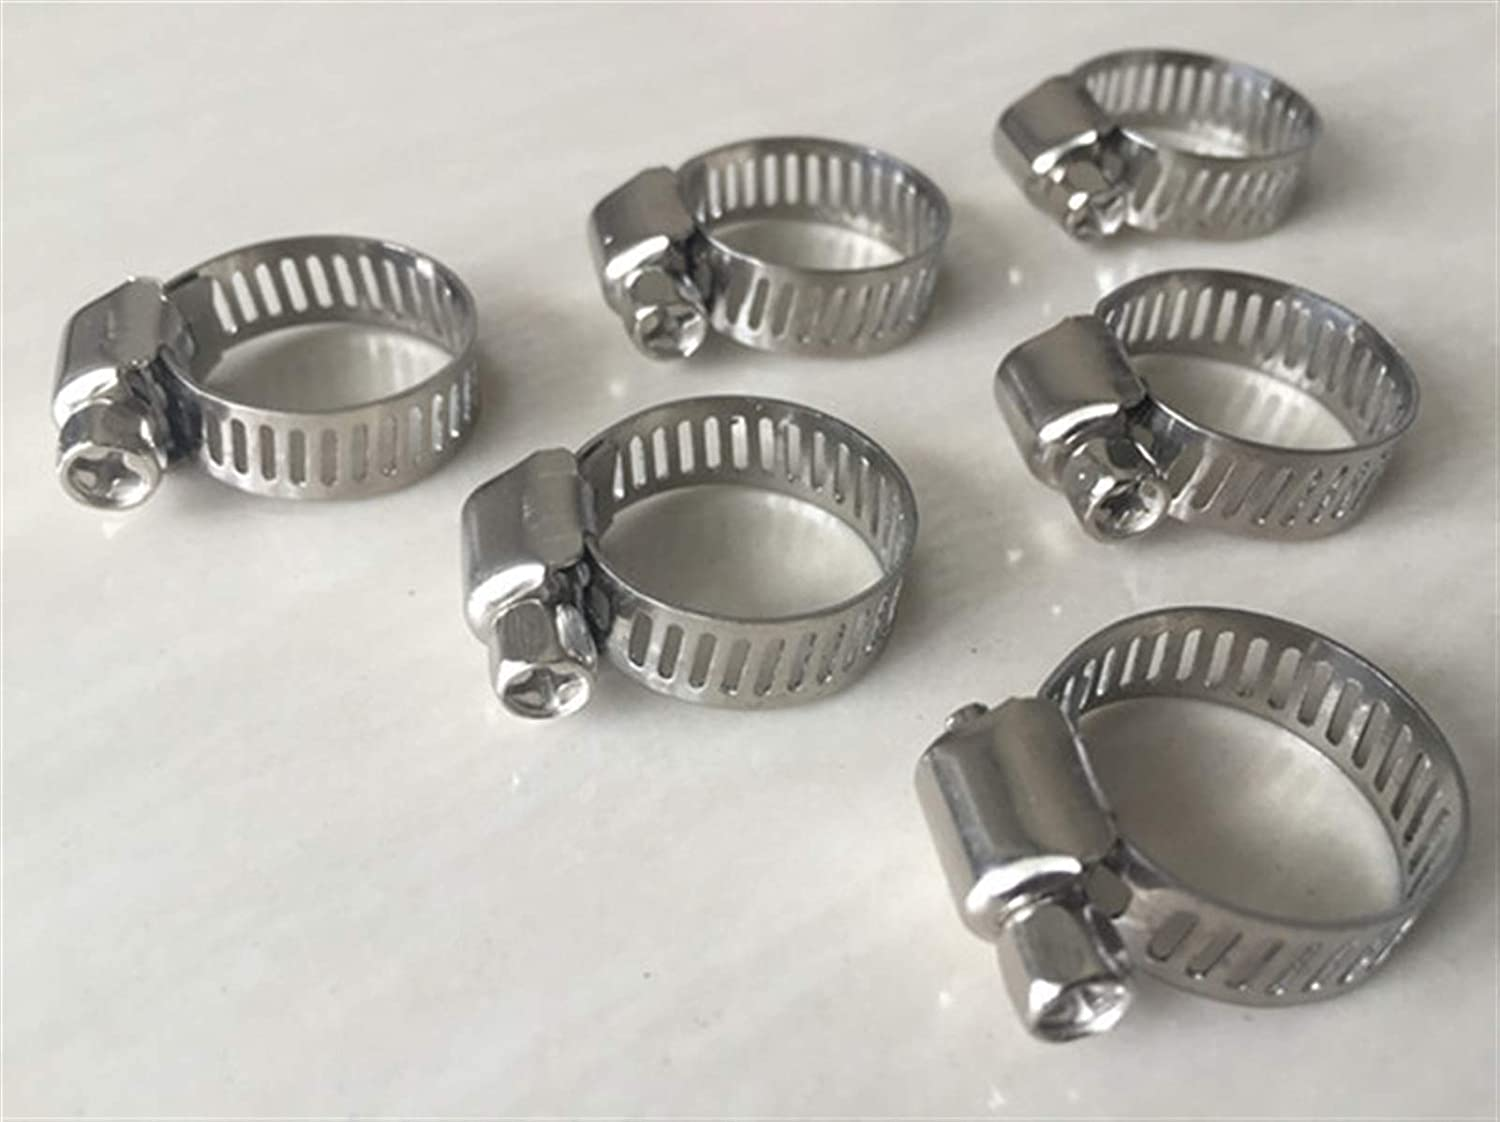 Pipe Tube Direct sale of Ranking TOP14 manufacturer Clips 10pcs Stainless Hose Adjustable Steel Drive Cla